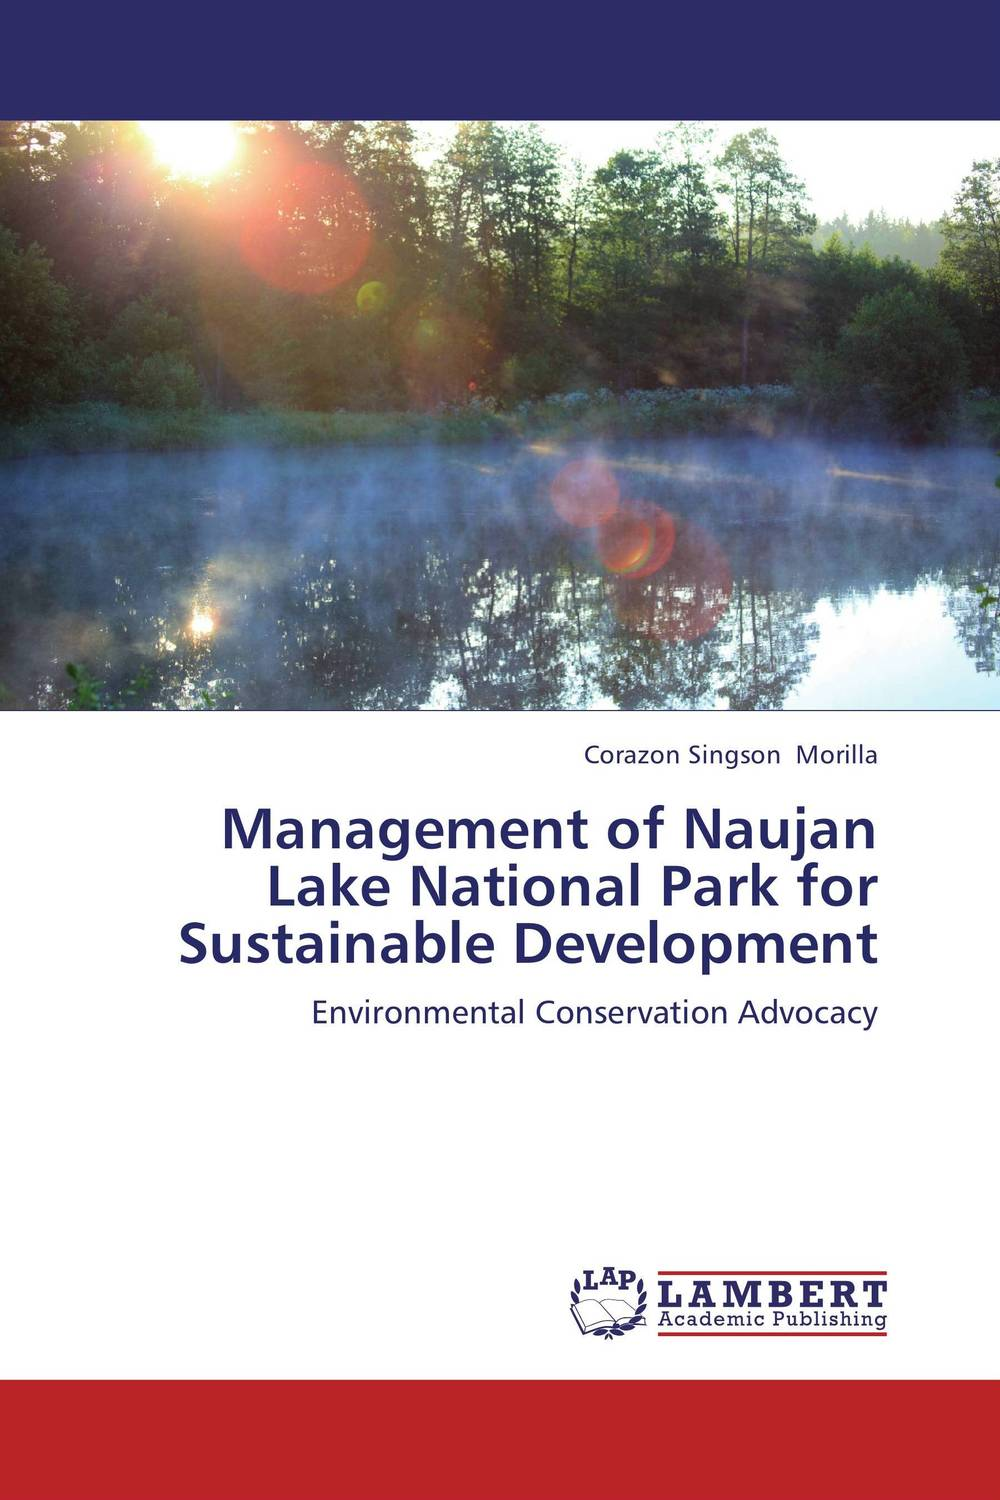 Management of Naujan Lake National Park for  Sustainable Development bennett conservation and management of natural resources in the united states